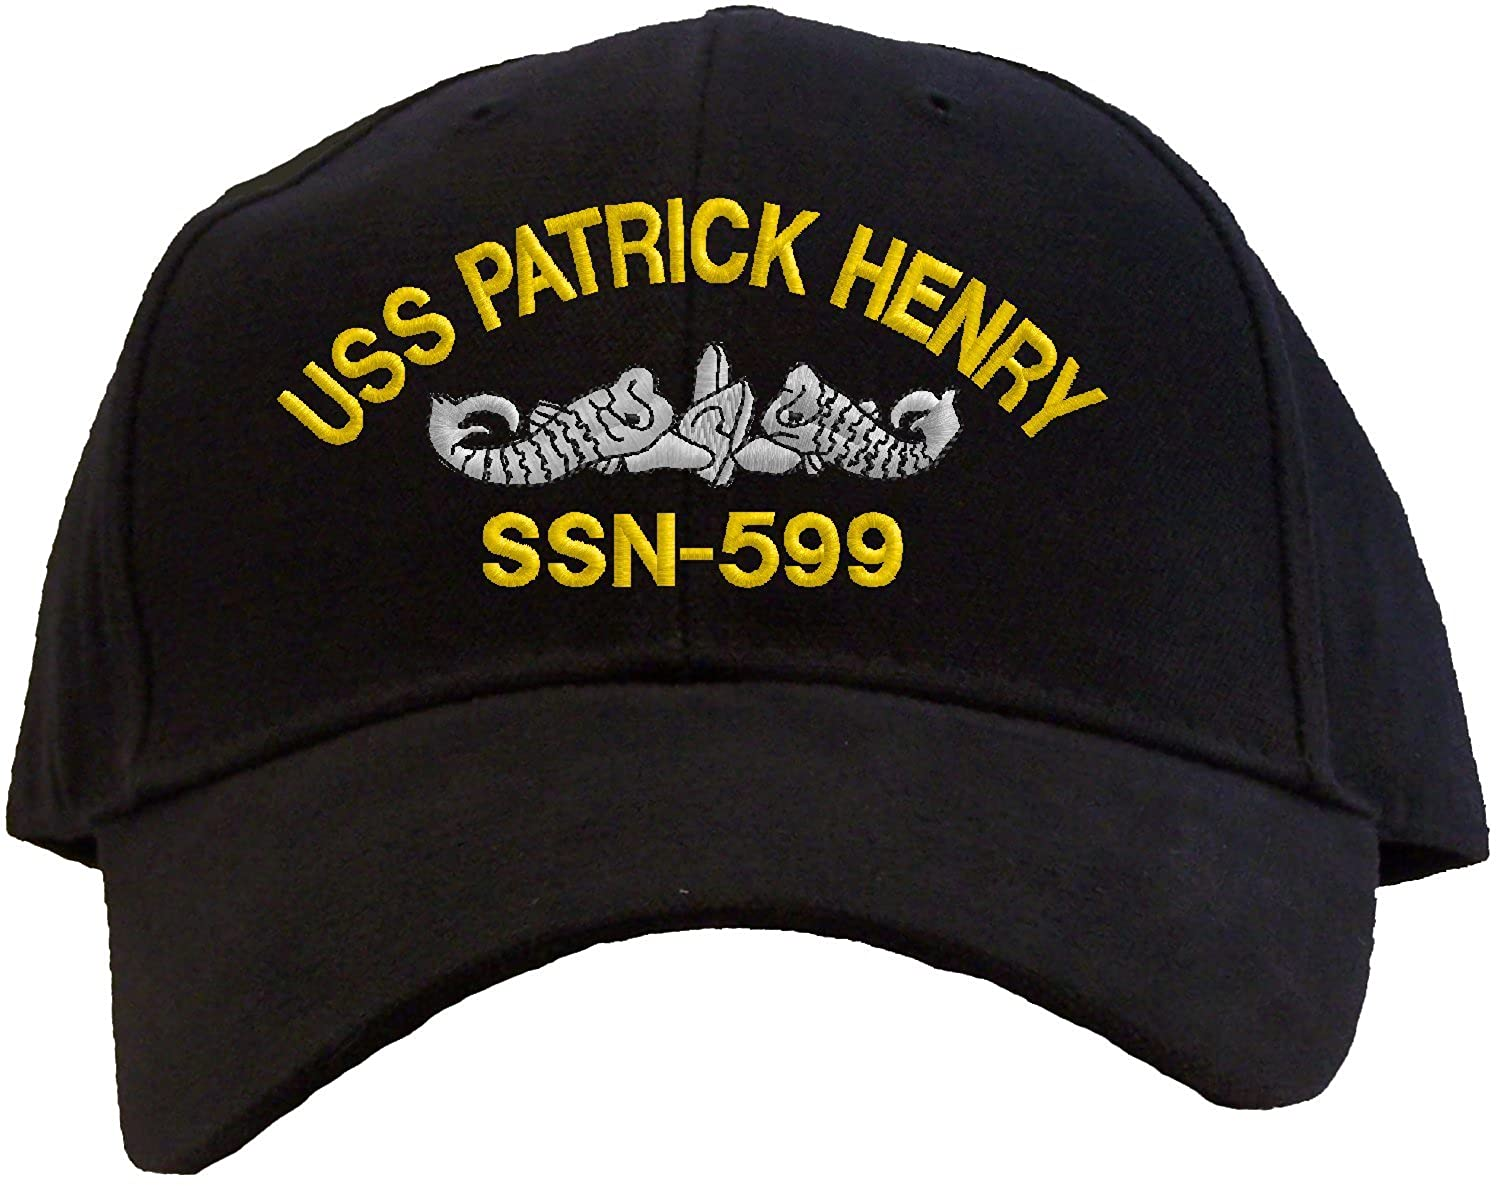 Spiffy Custom Gifts USS Patrick Henry SSN-599 Embroidered Pro Sport Baseball Cap